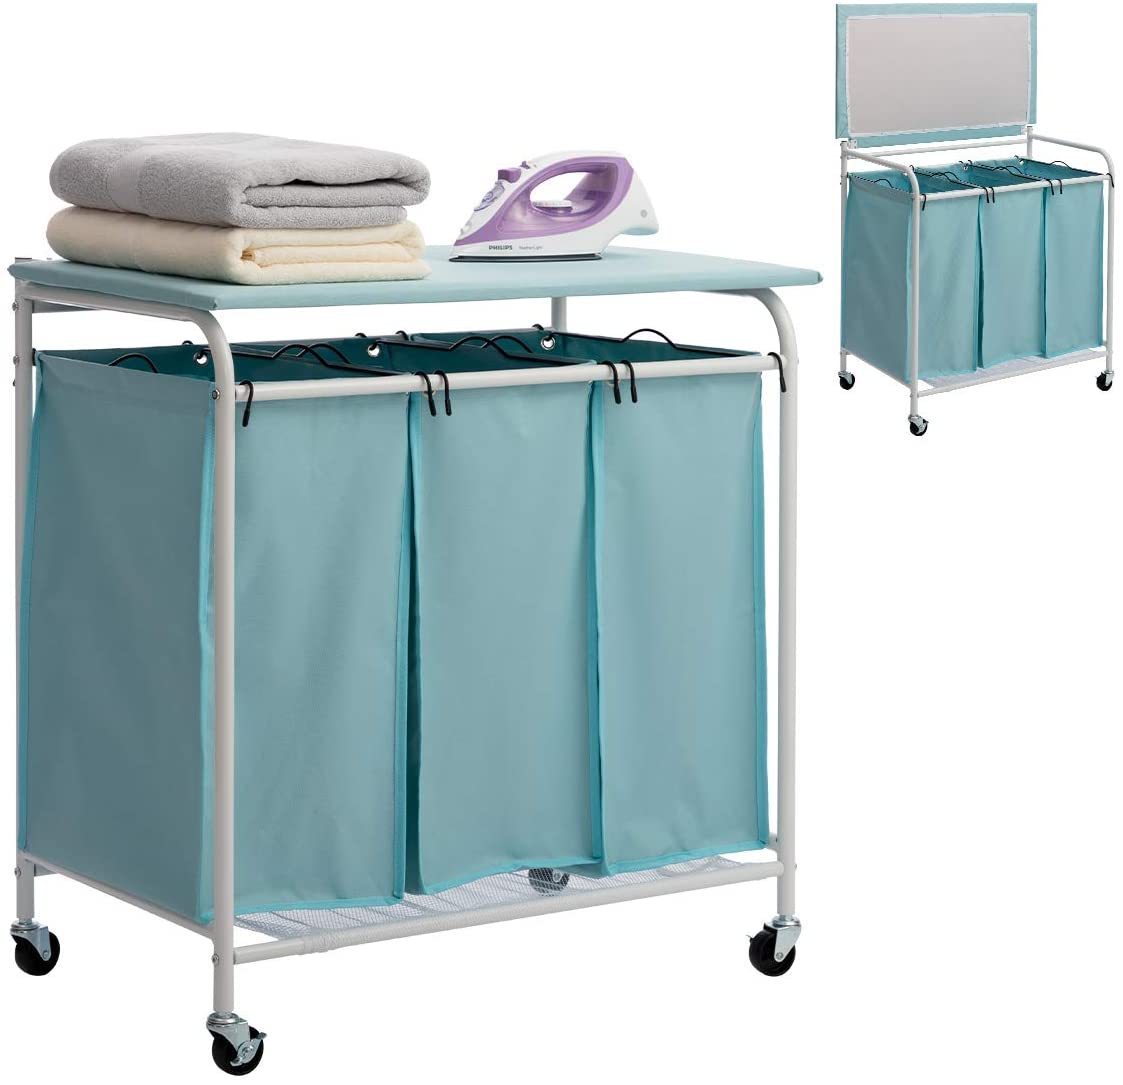 HollyHOME 3-Bags Laundry Sorter Cart with Foldable Ironing Board Rolling Heavy-Duty Laundry Hamper with Removable Bags Mobile Brake Caster Light Blue